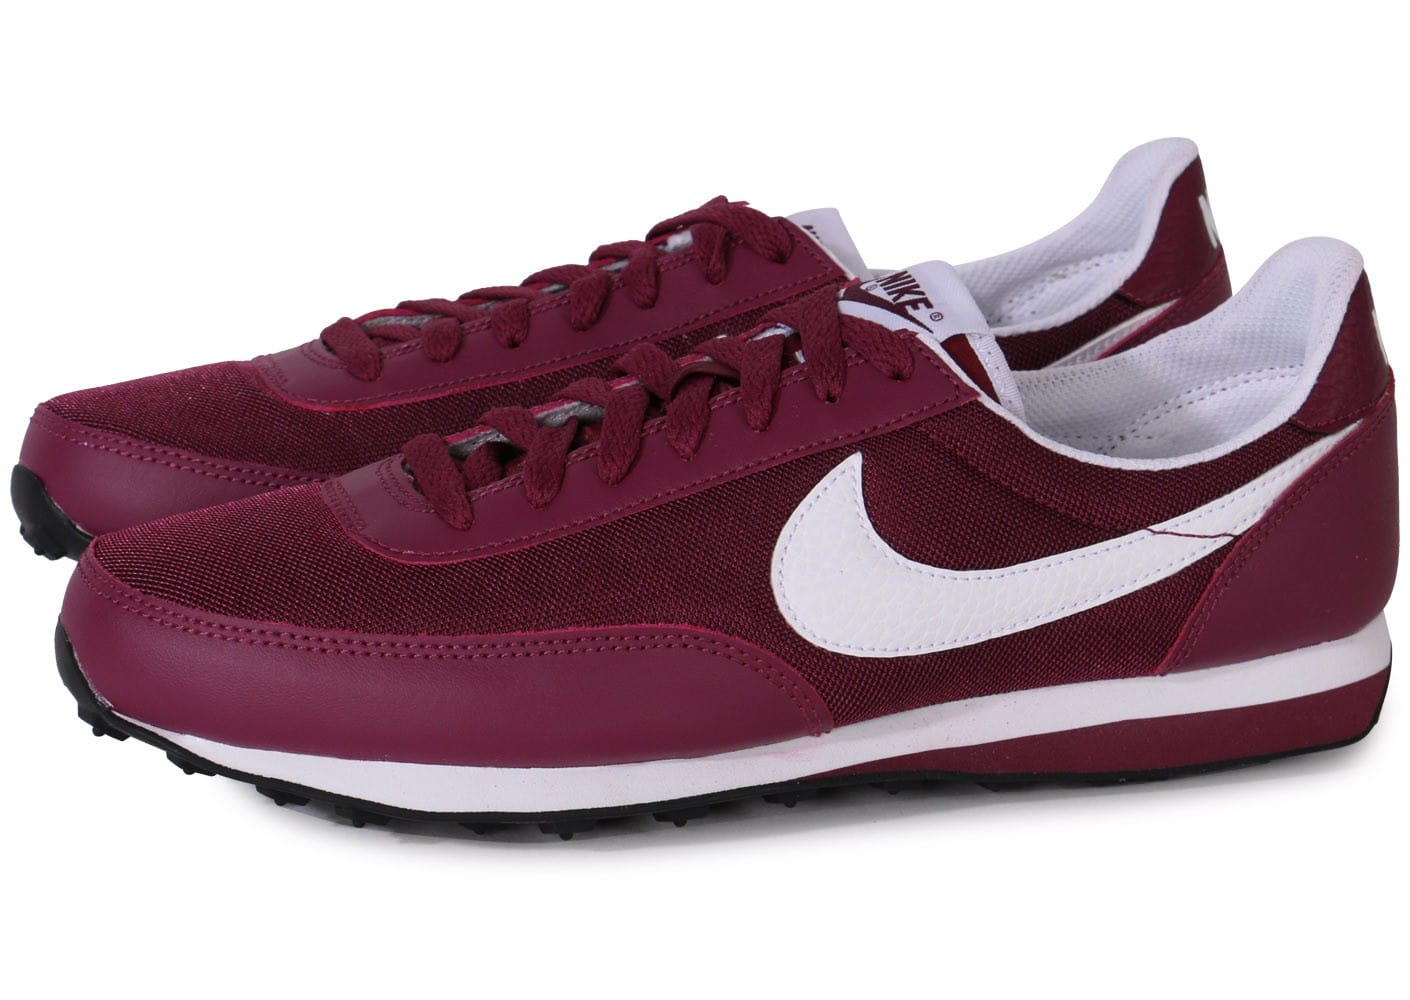 Femme chaussures Nike Pas Cher Elite Pour Chaussure Baskets H9YWED2I